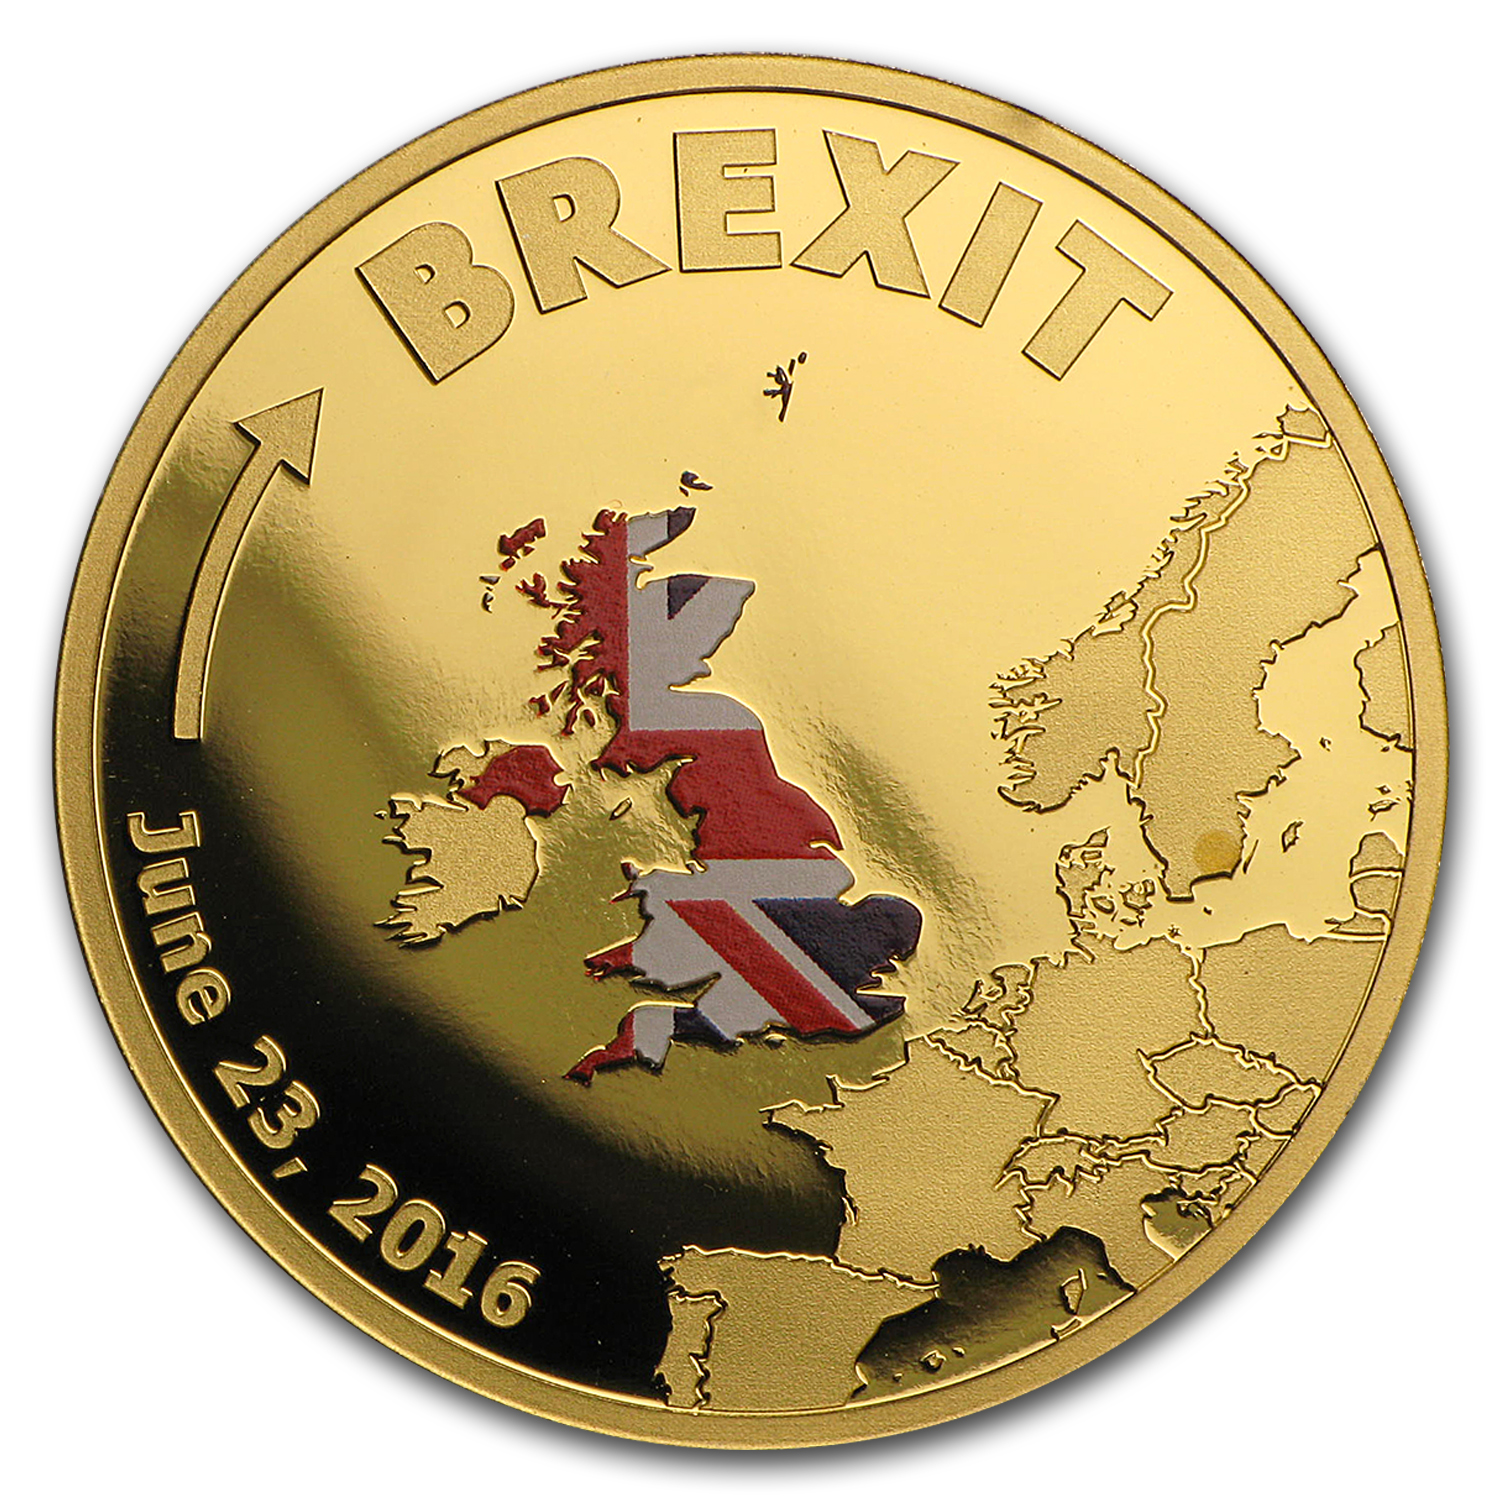 2016 Cook Islands 1/10 oz Gold Brexit Proof